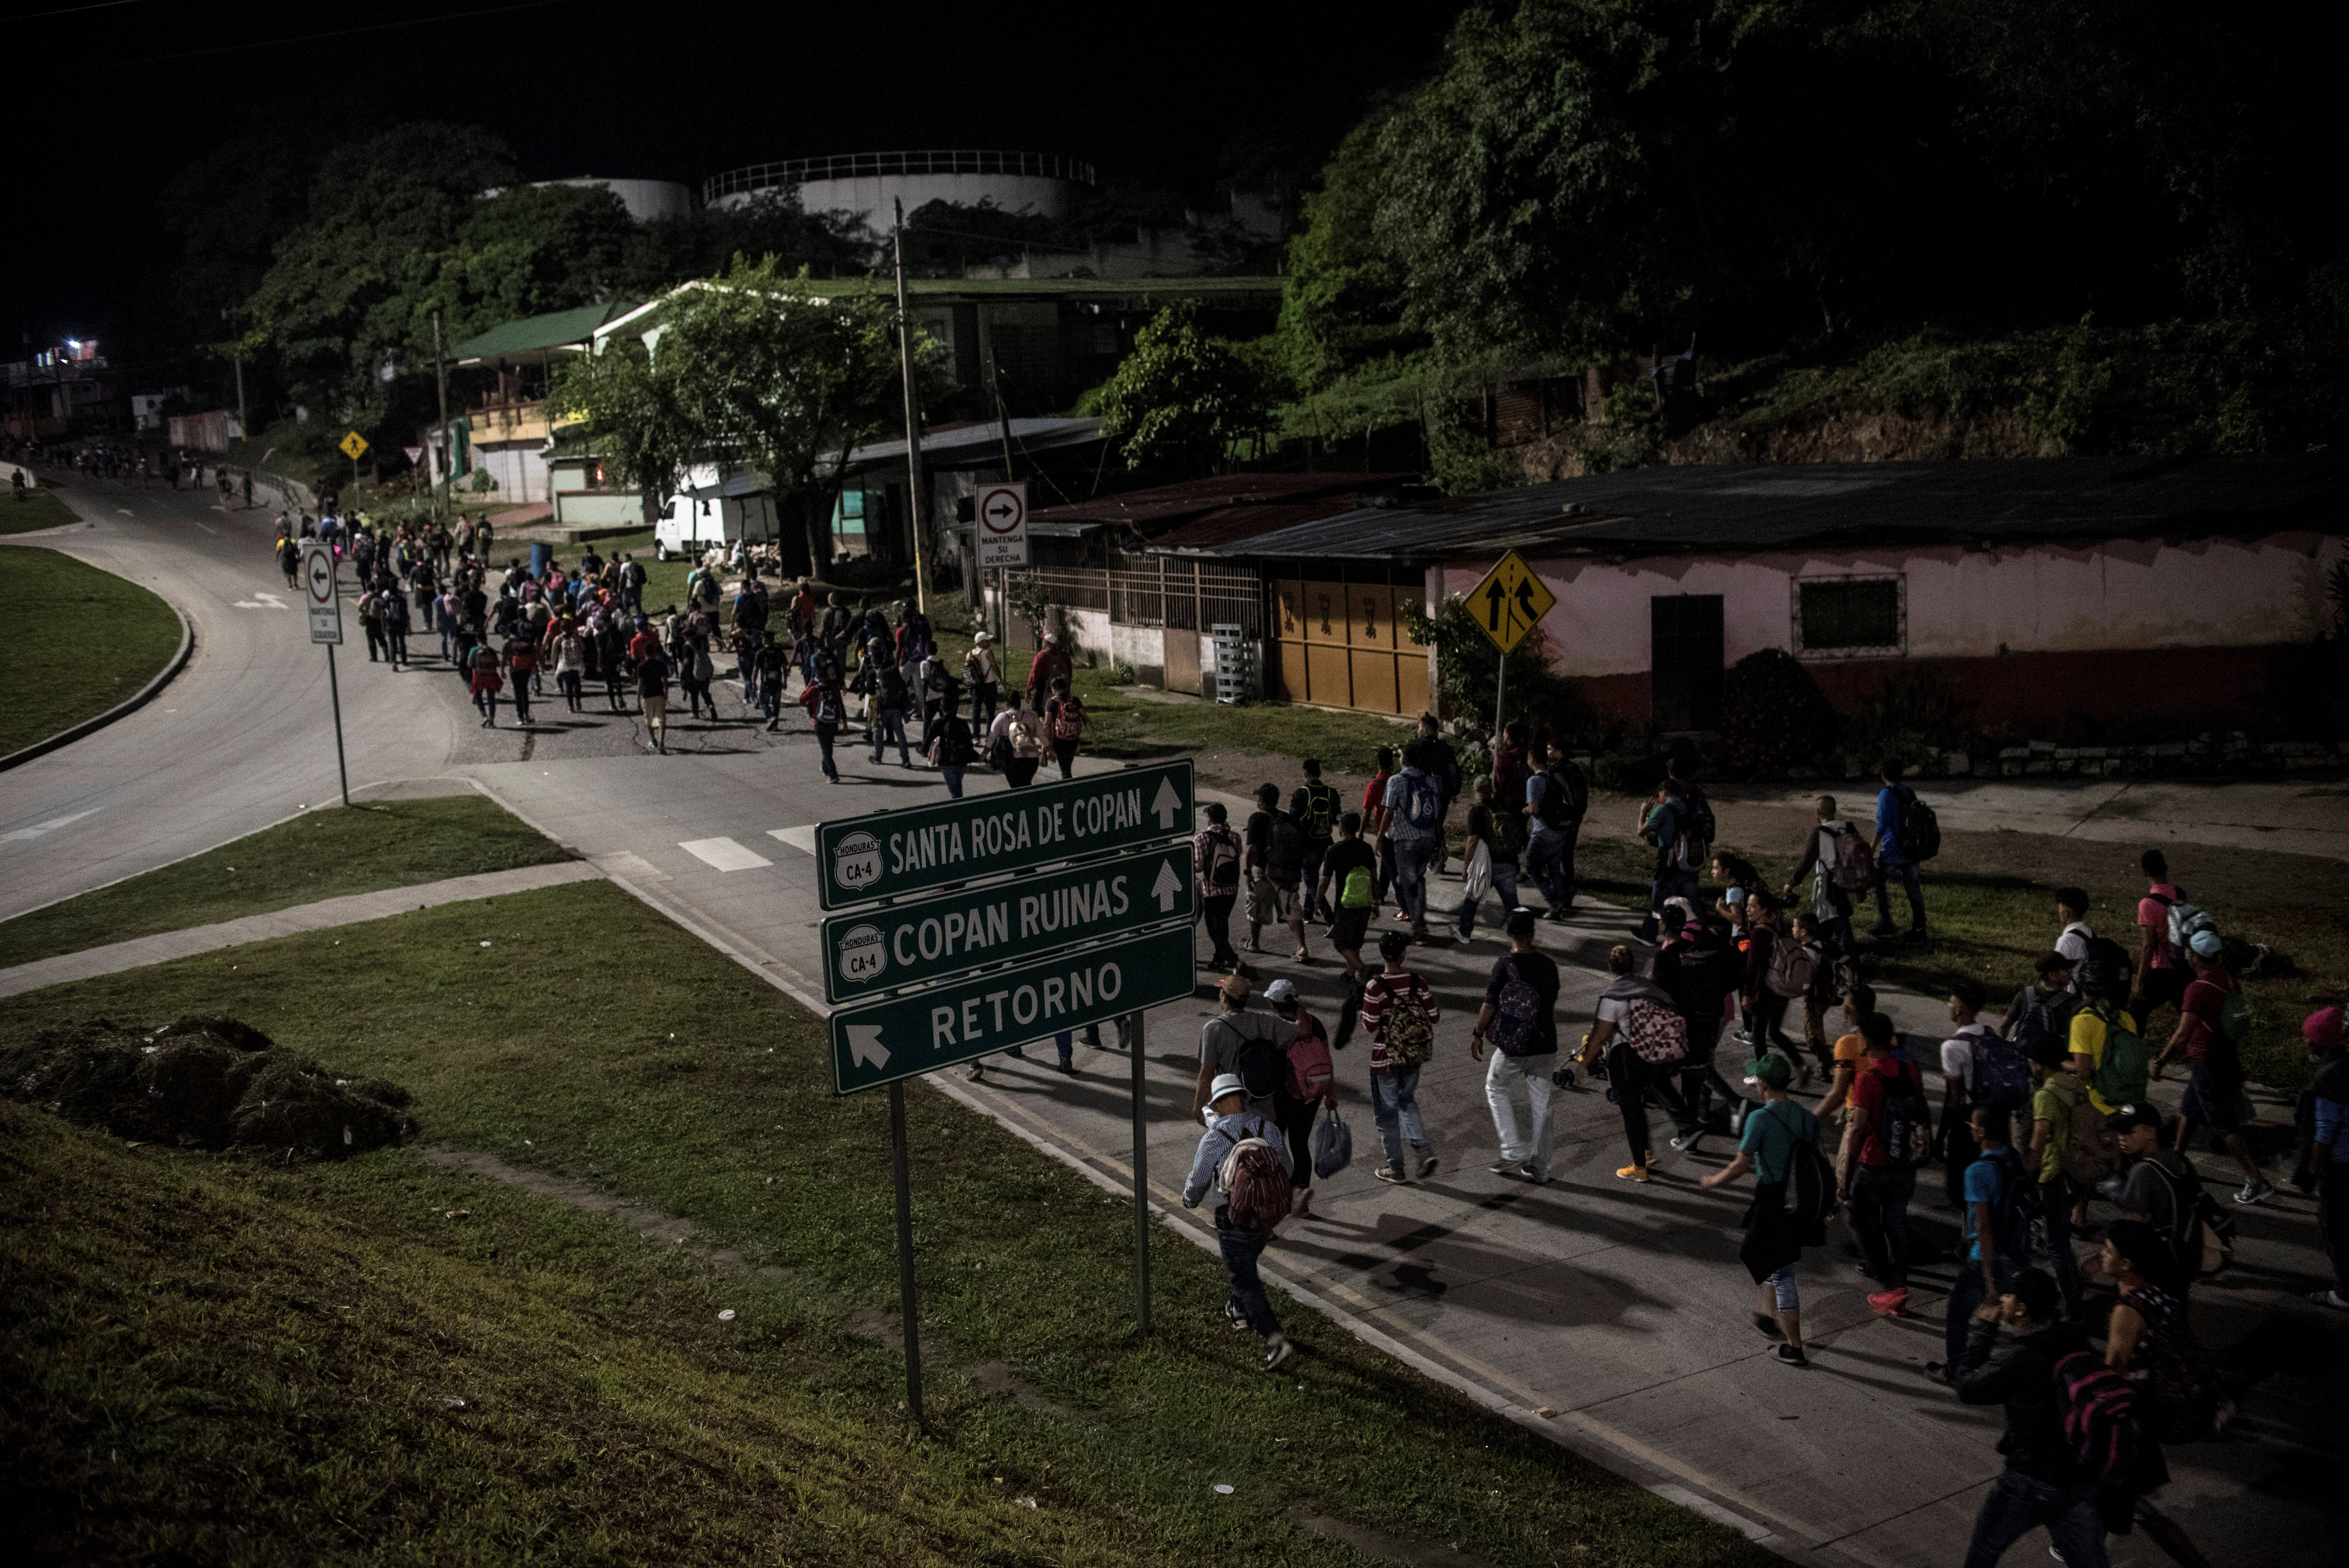 Hondurans walk along a road as they take part in a new caravan of migrants, set to head to the United States, in San Pedro Sula